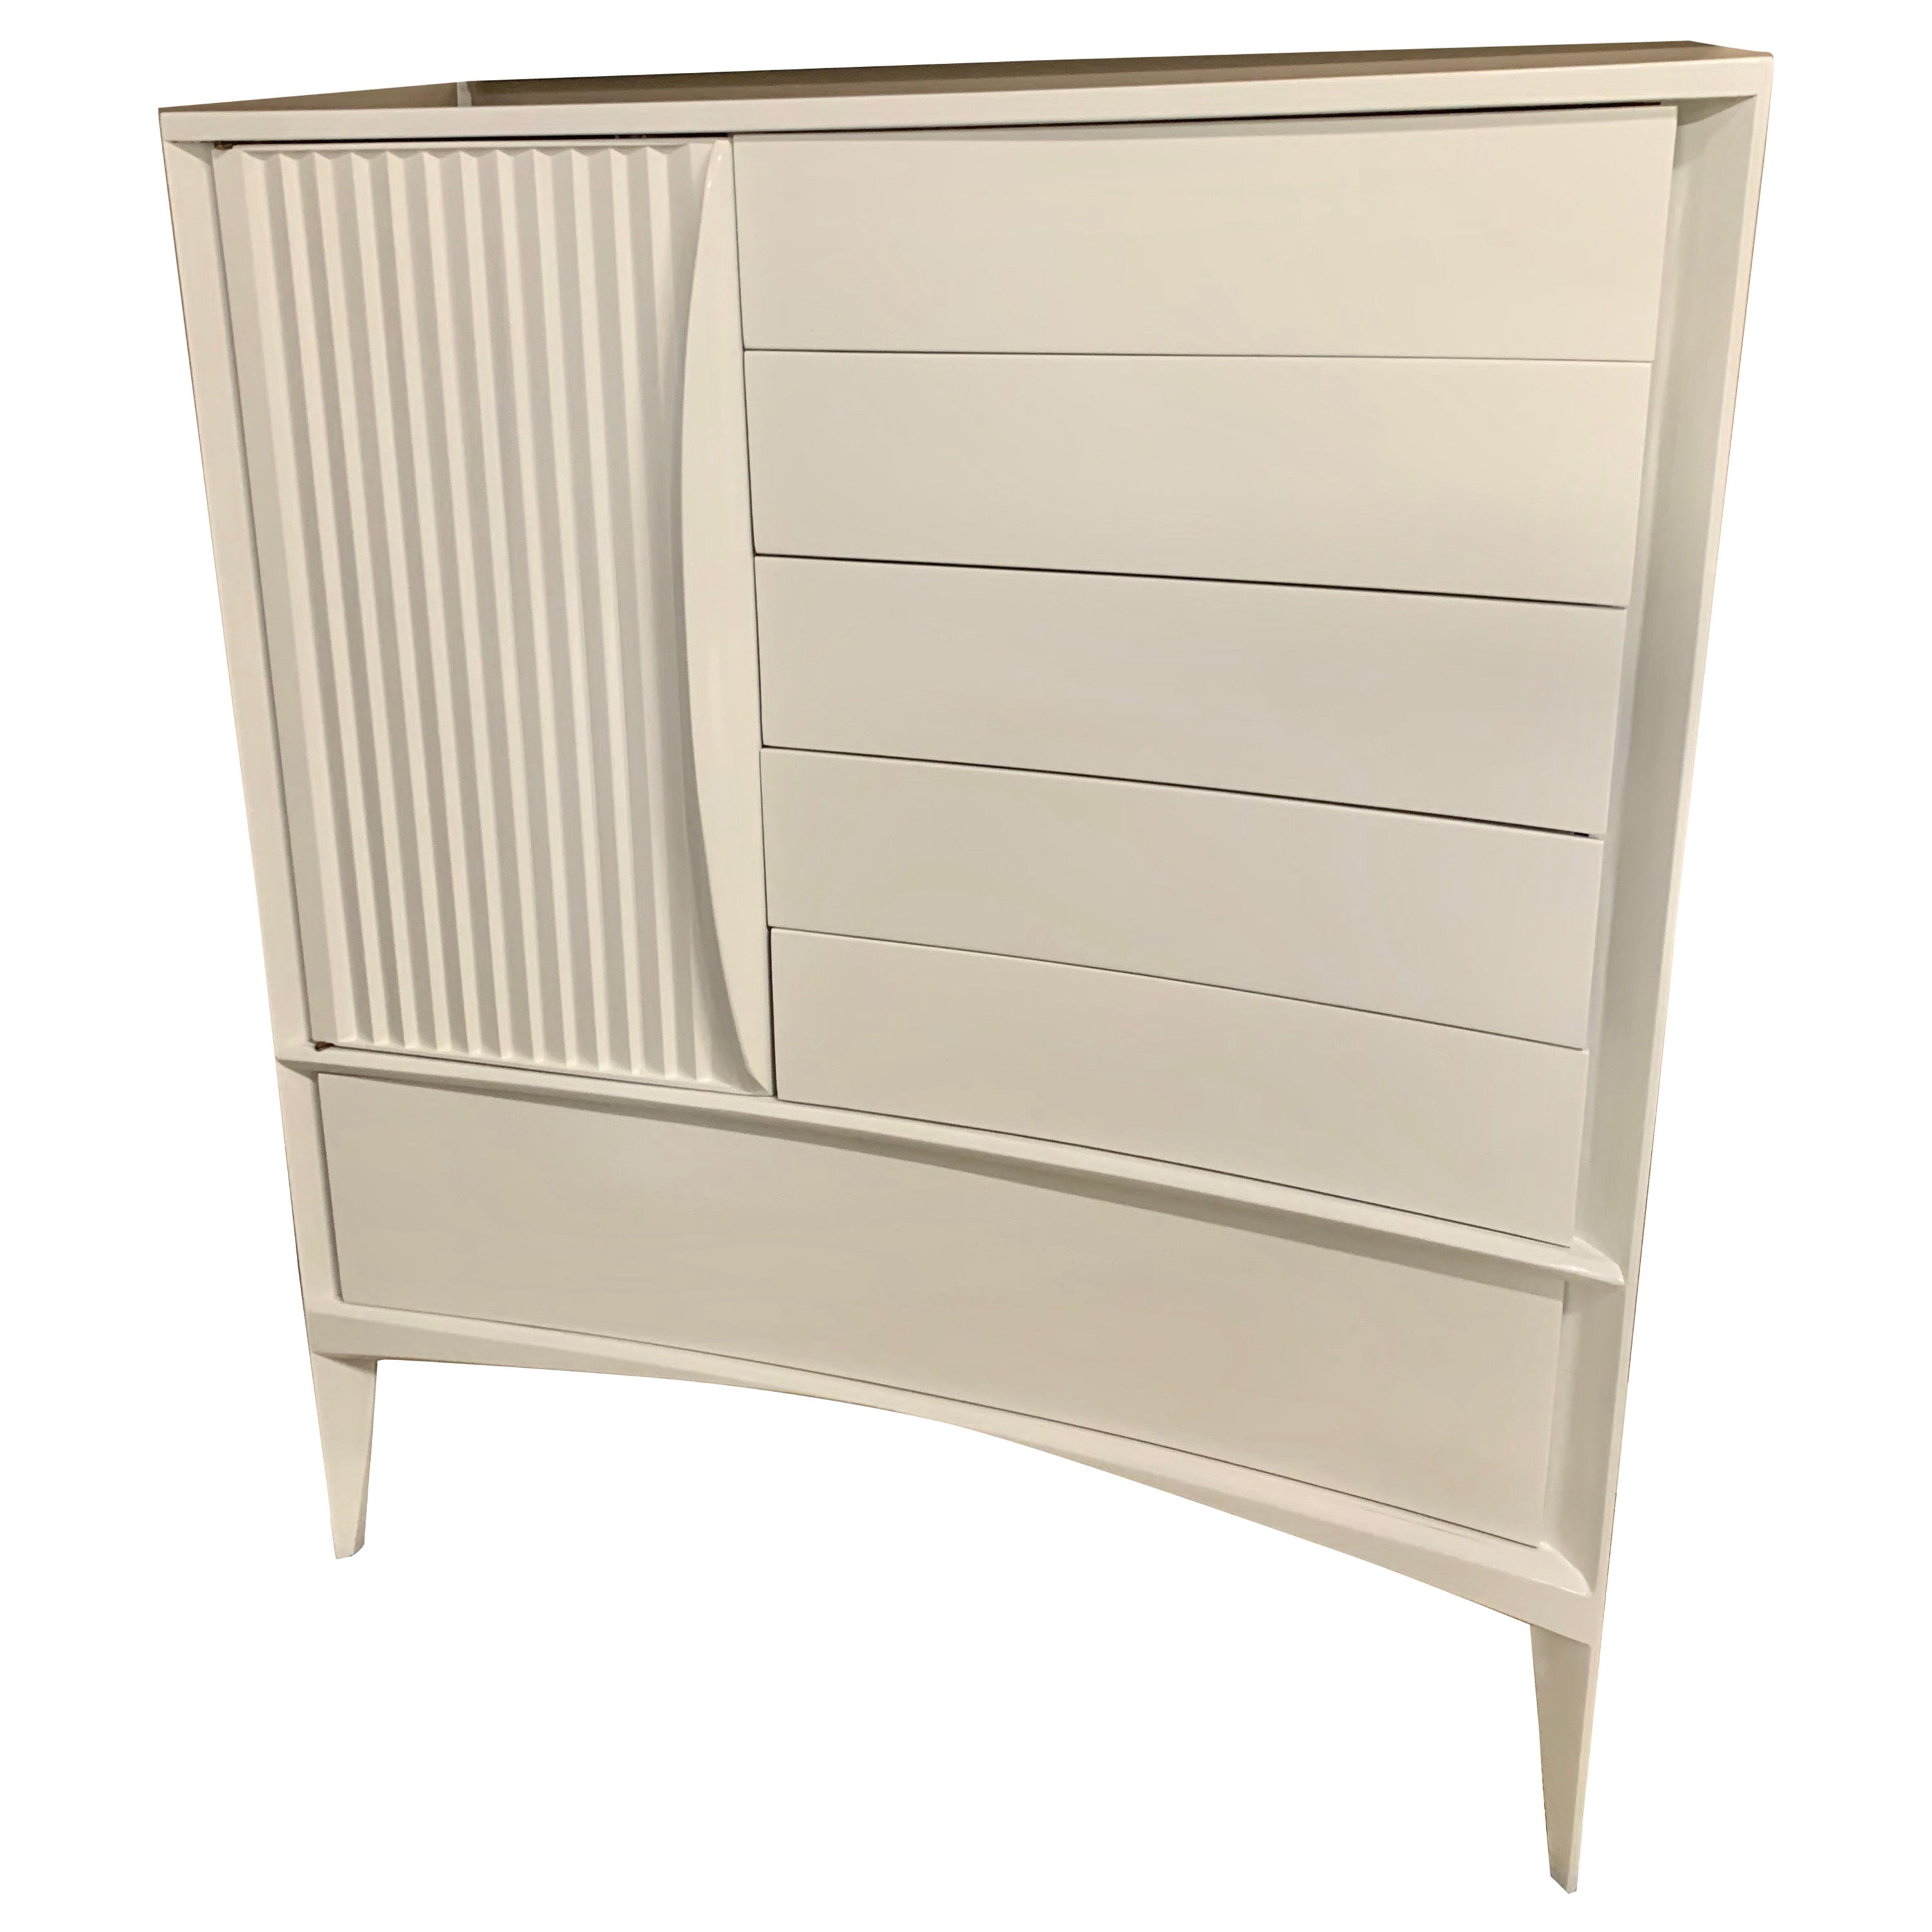 Midcentury Newly Brilliant White Lacquered Dresser Chest Highboy Cabinet